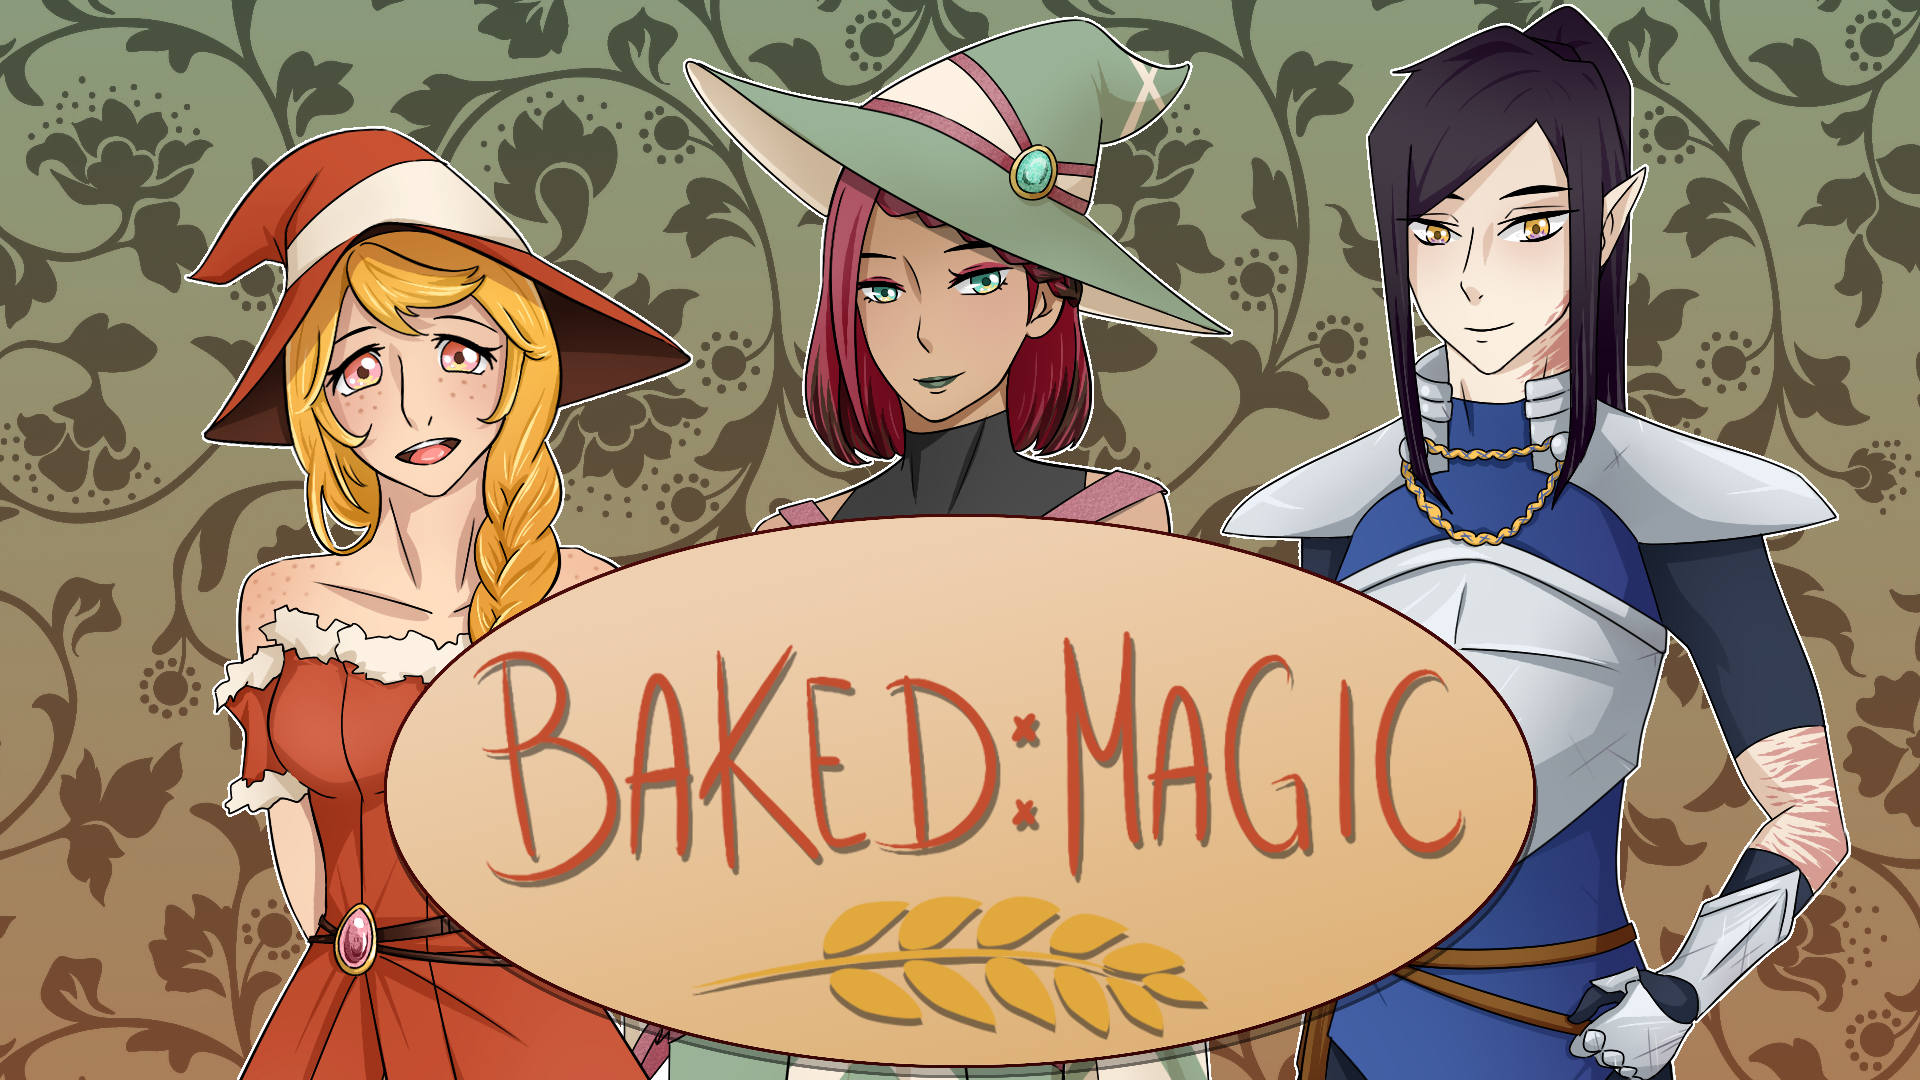 BAKED:MAGIC